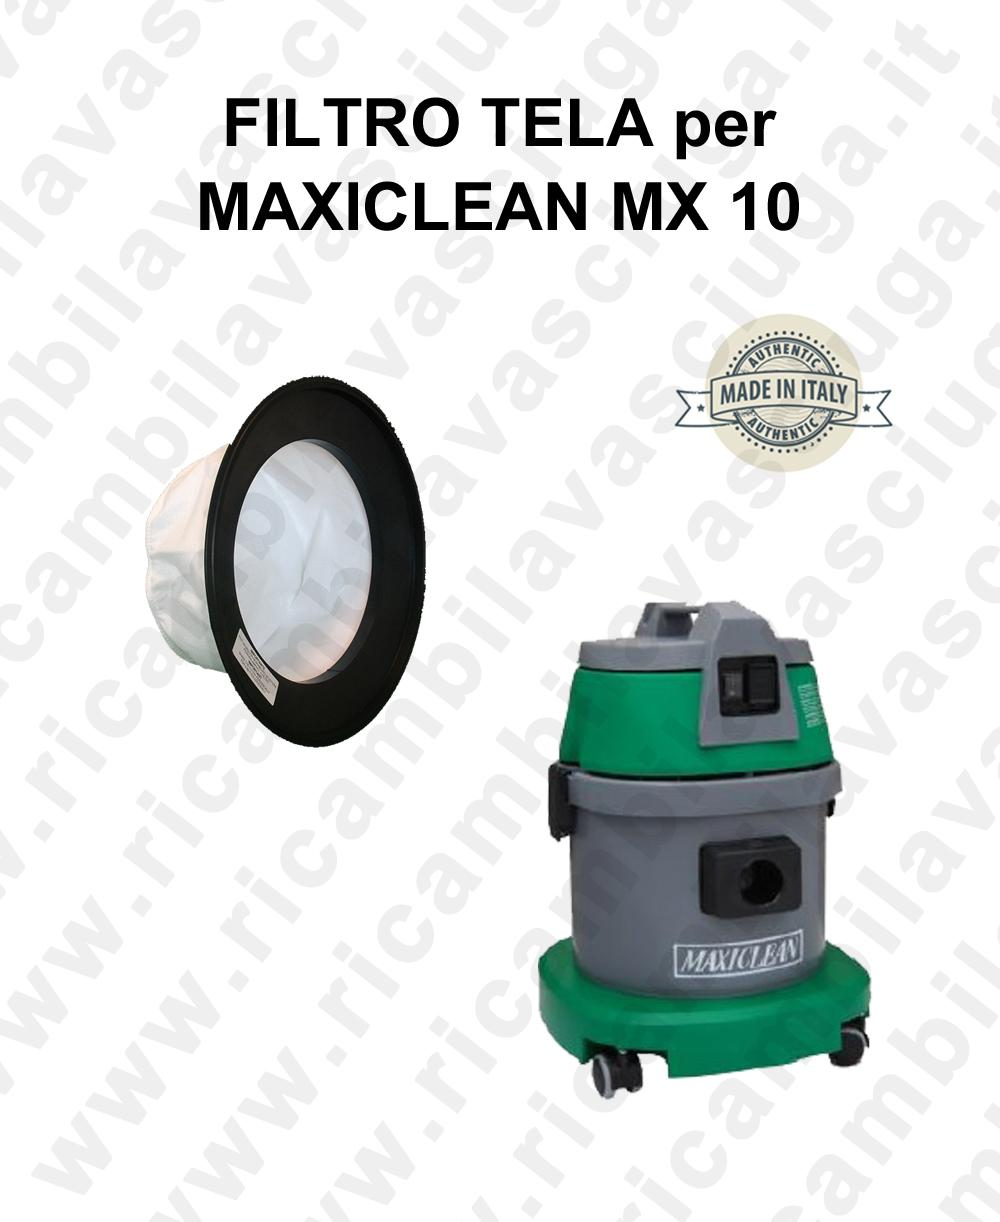 Canvas filter for vacuum cleaner MAXICLEAN model MX 10